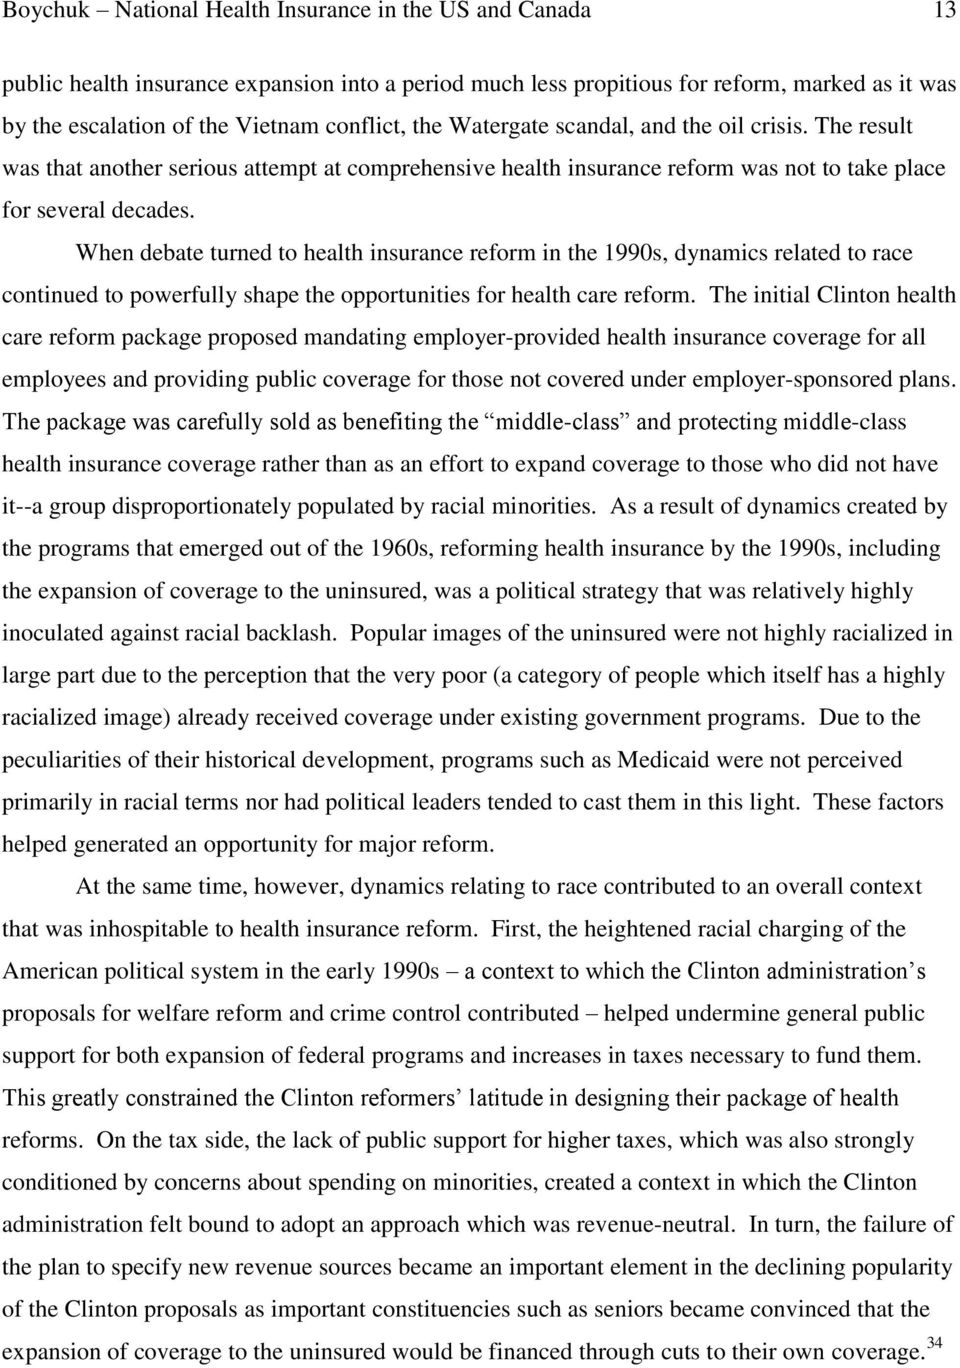 When debate turned to health insurance reform in the 1990s, dynamics related to race continued to powerfully shape the opportunities for health care reform.